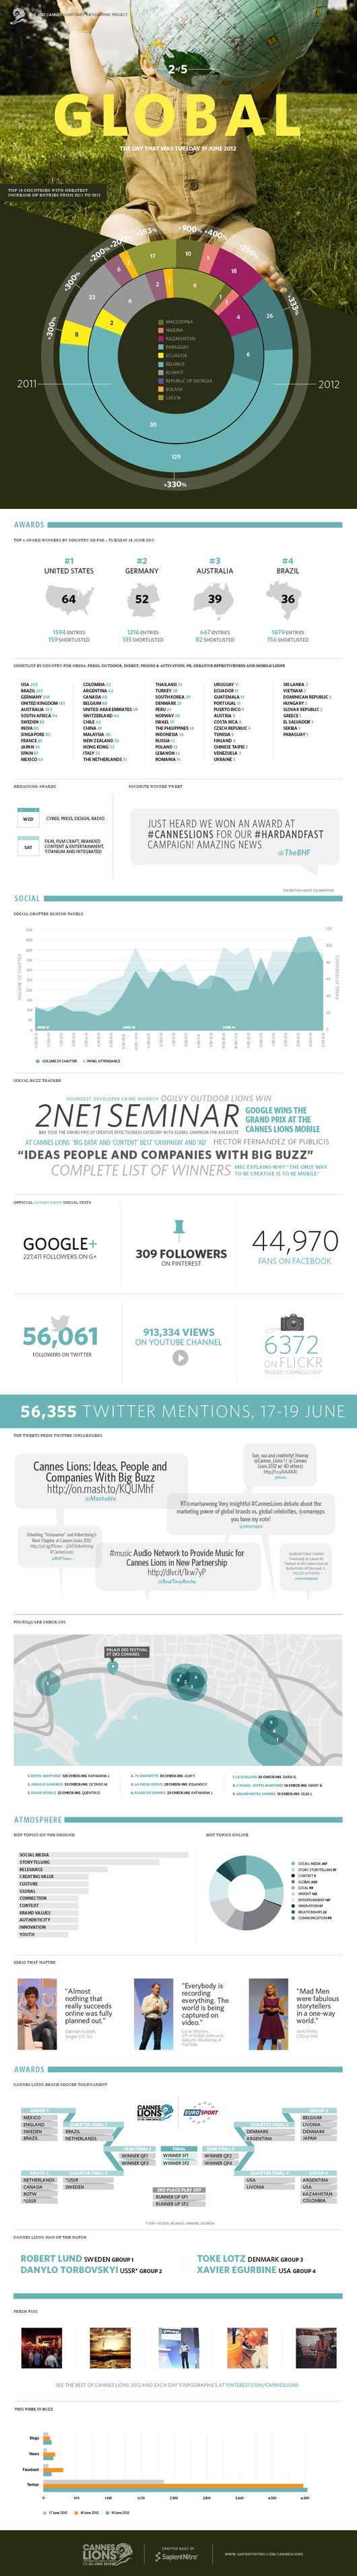 Cannes Lions 19 June 2012-Infographic